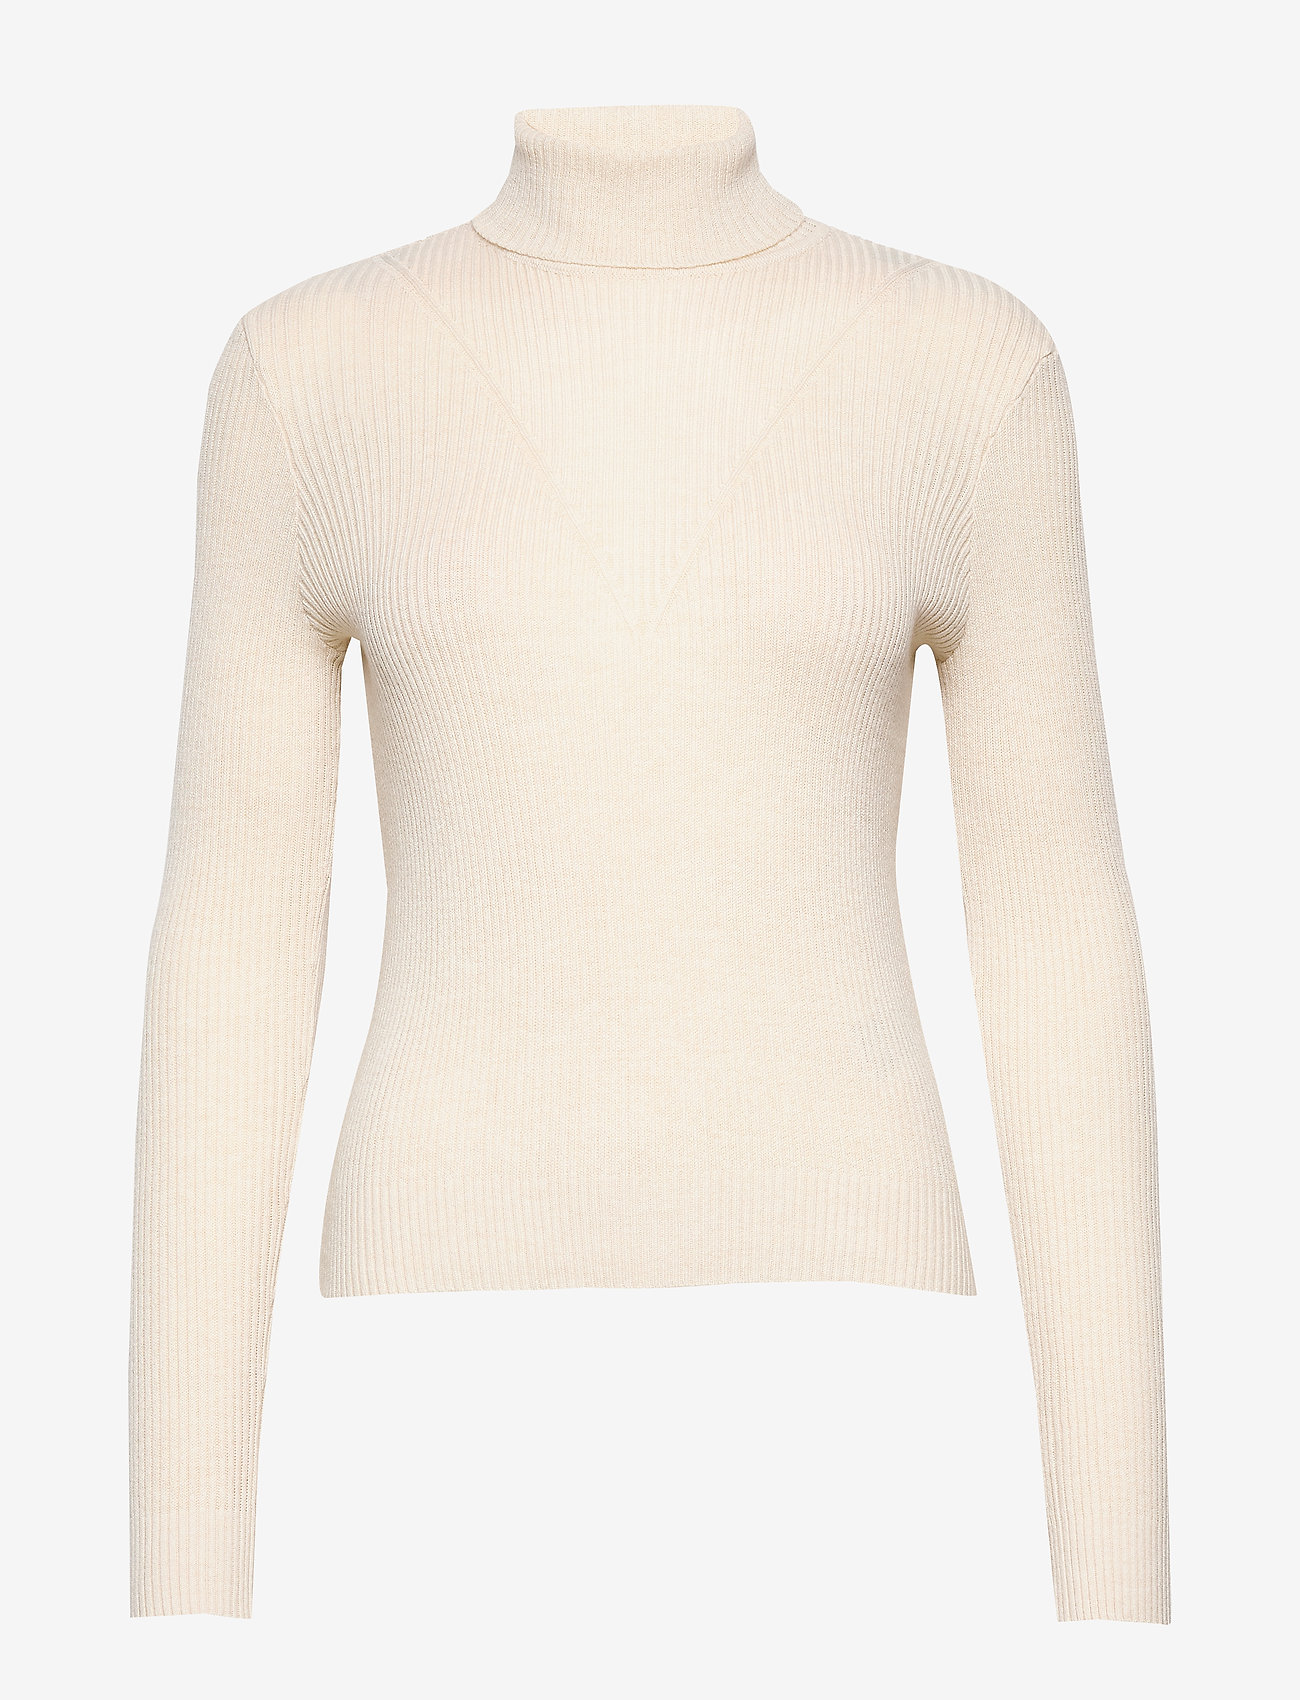 Vero Moda - VMCUTIE LS HIGHNECK BLOUSE - turtlenecks - birch - 0